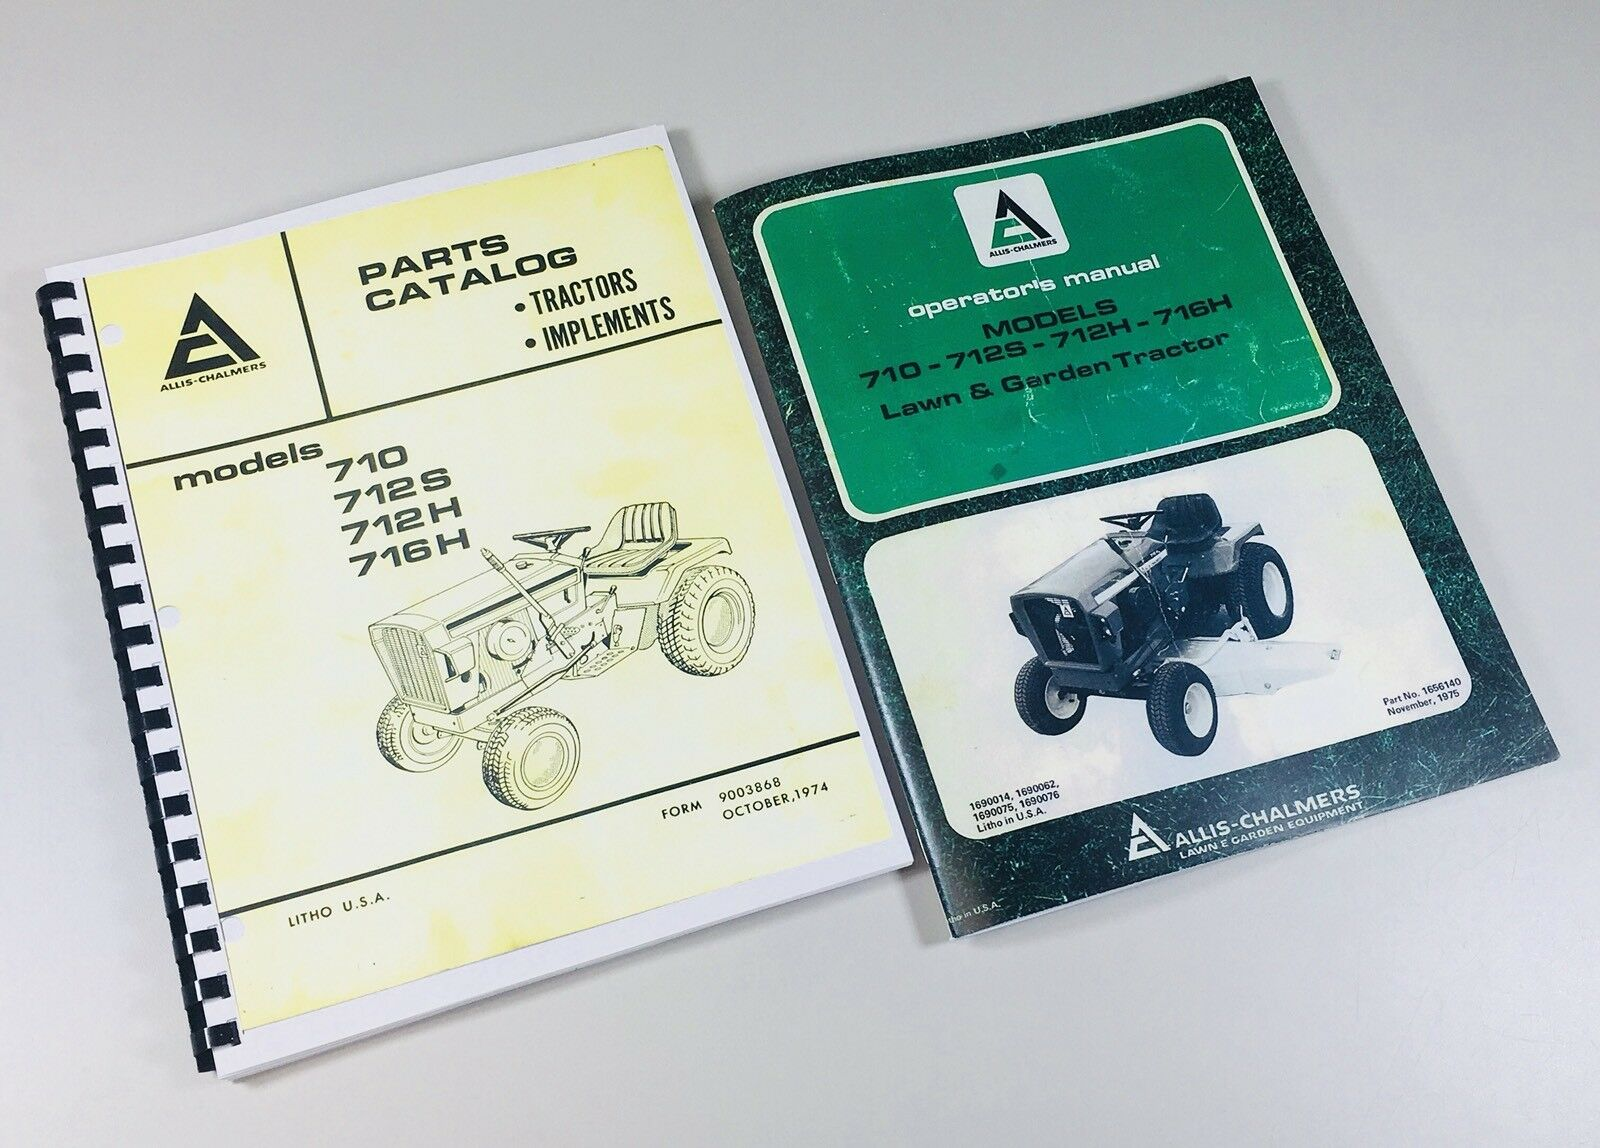 LOT ALLIS CHALMERS OPERATORS OWNERS PARTS MANUALS 700 SERIES LAWN GARDEN  TRACTOR | eBay